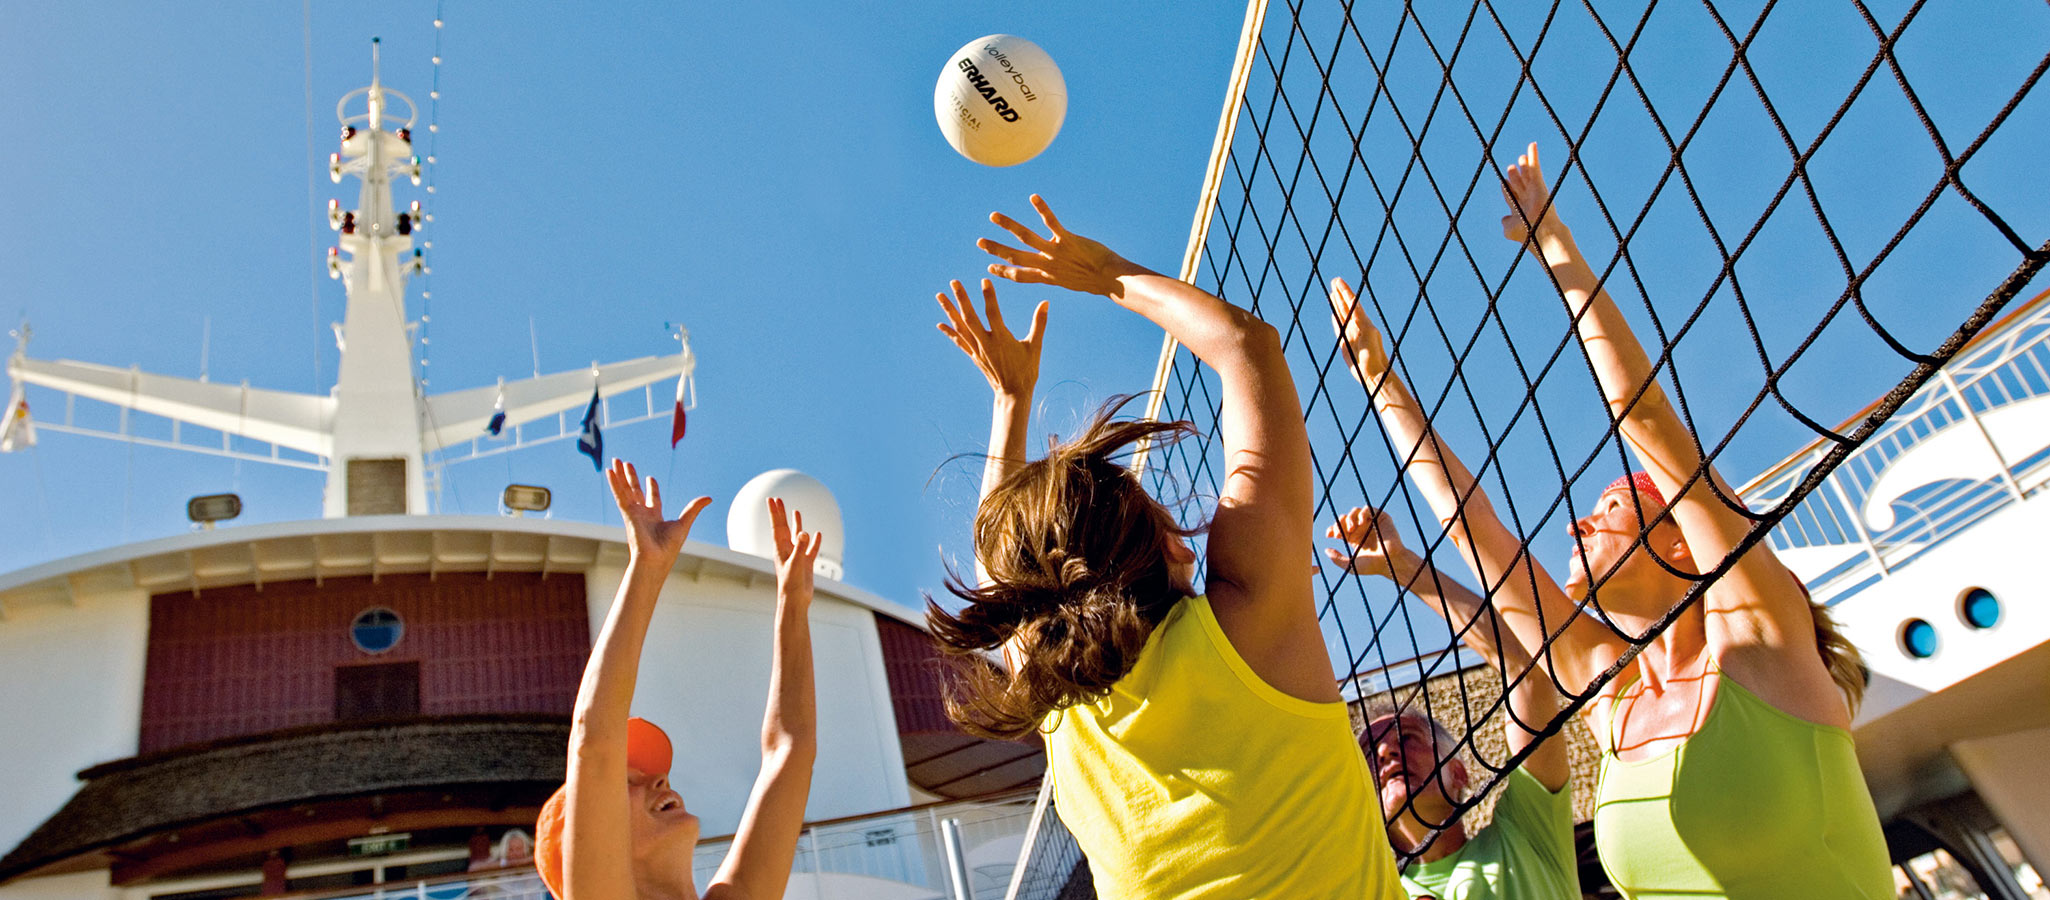 Any number of sports activities are included on board, from ball games to high-tech gyms.